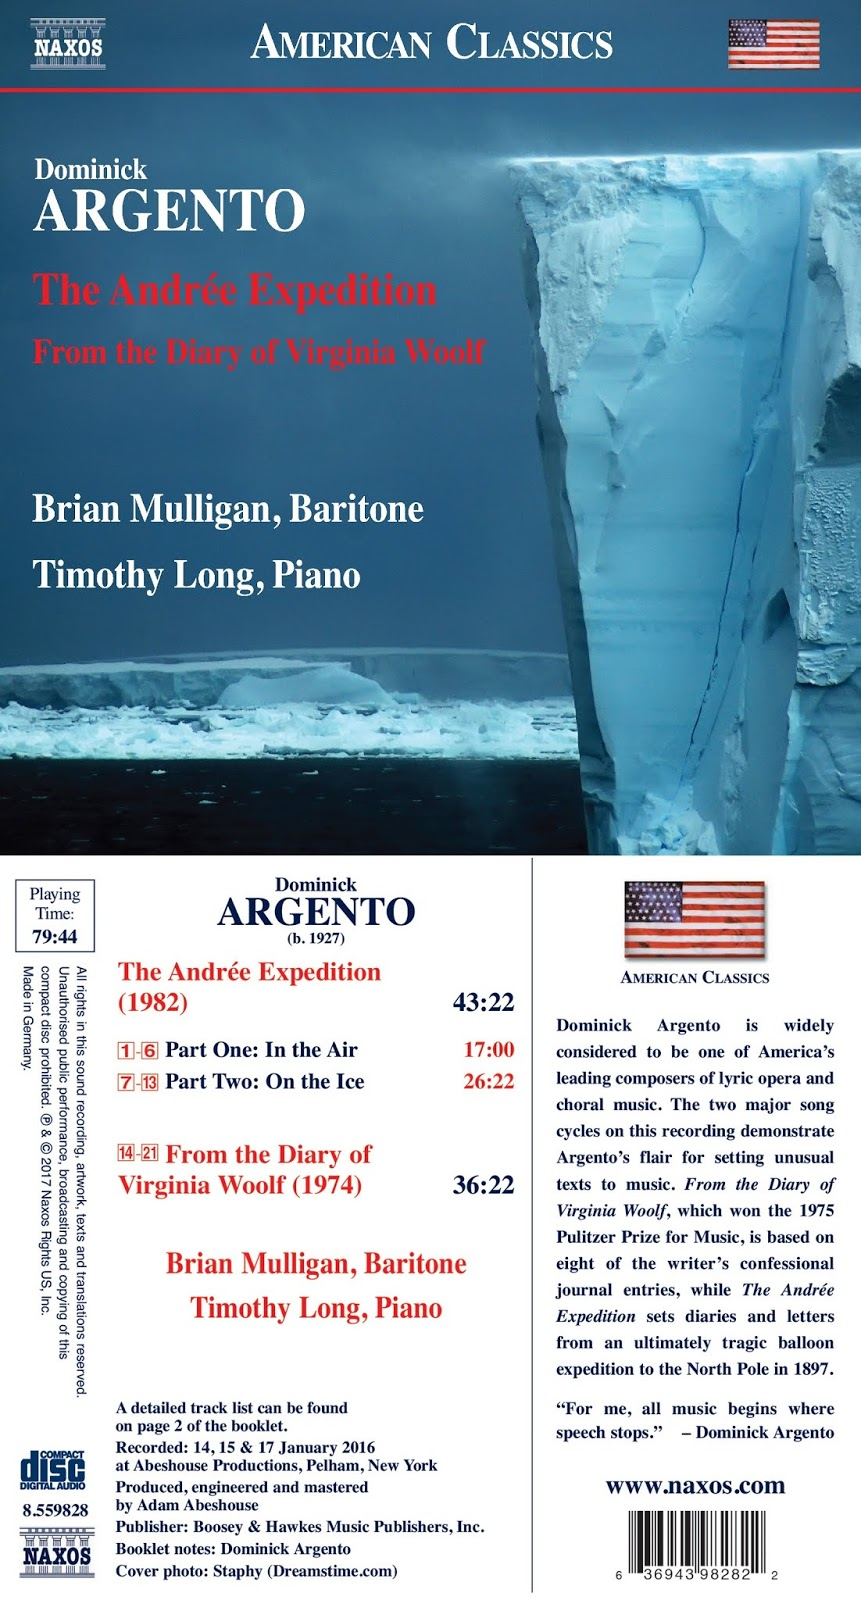 ARTS IN ACTION: Song Cycles by Dominick Argento, performed by baritone BRIAN MULLIGAN and pianist TIMOTHY LONG (Naxos 8.559828)